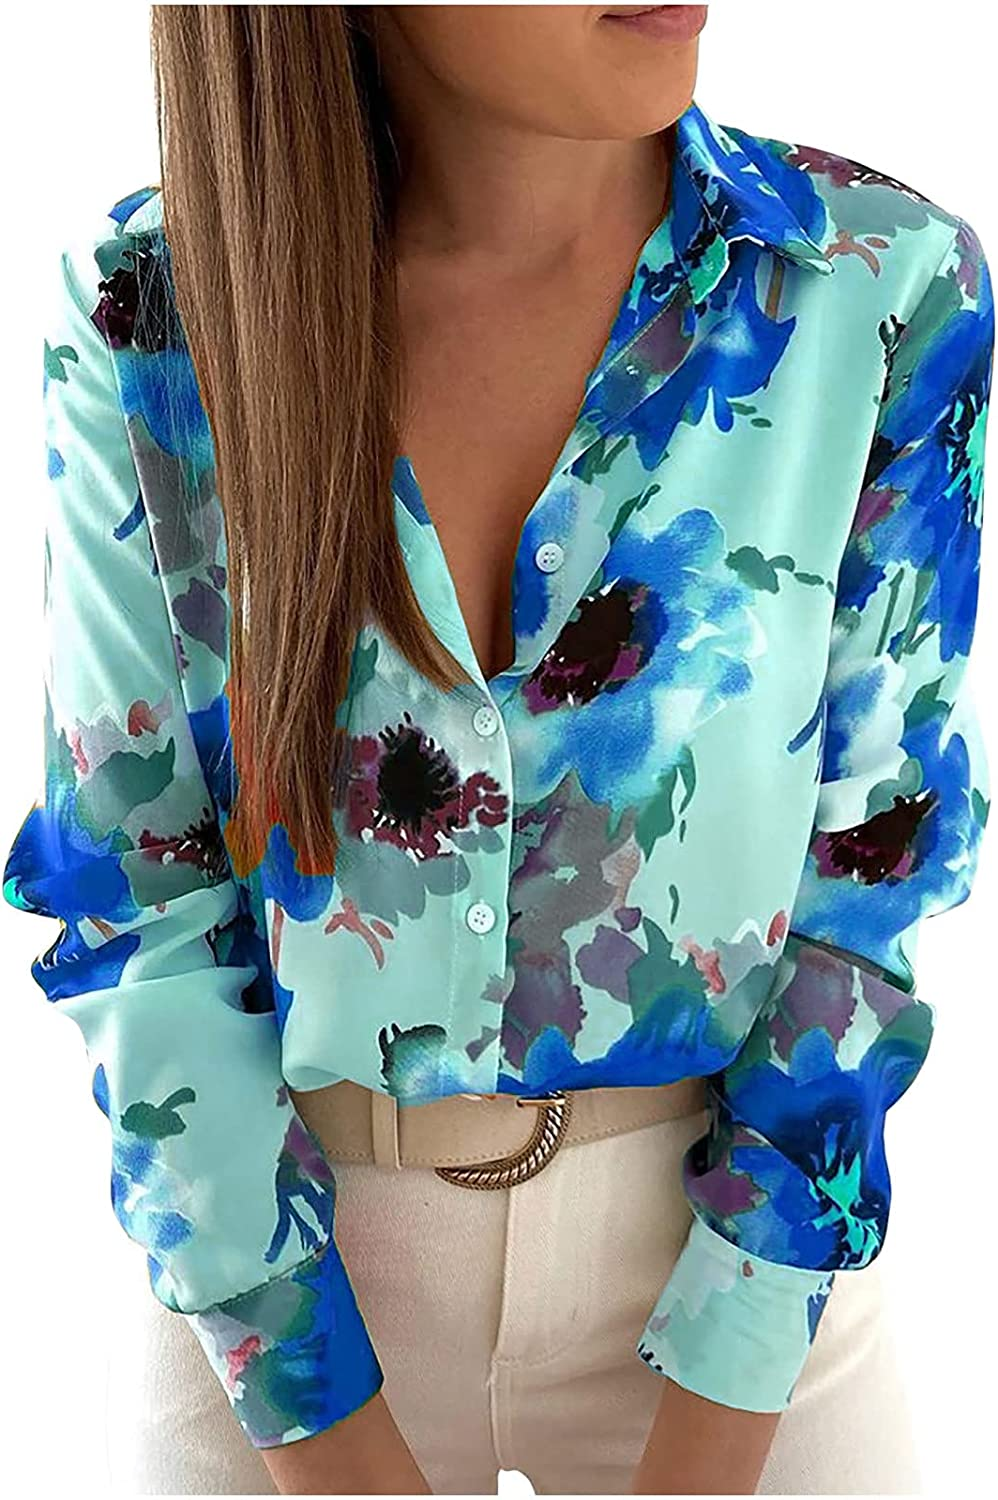 Long Sleeve Shirts Tops for Women Loose Fit Tunic Tops Button Fall Tees Fashion Floral Print Fall Blouses